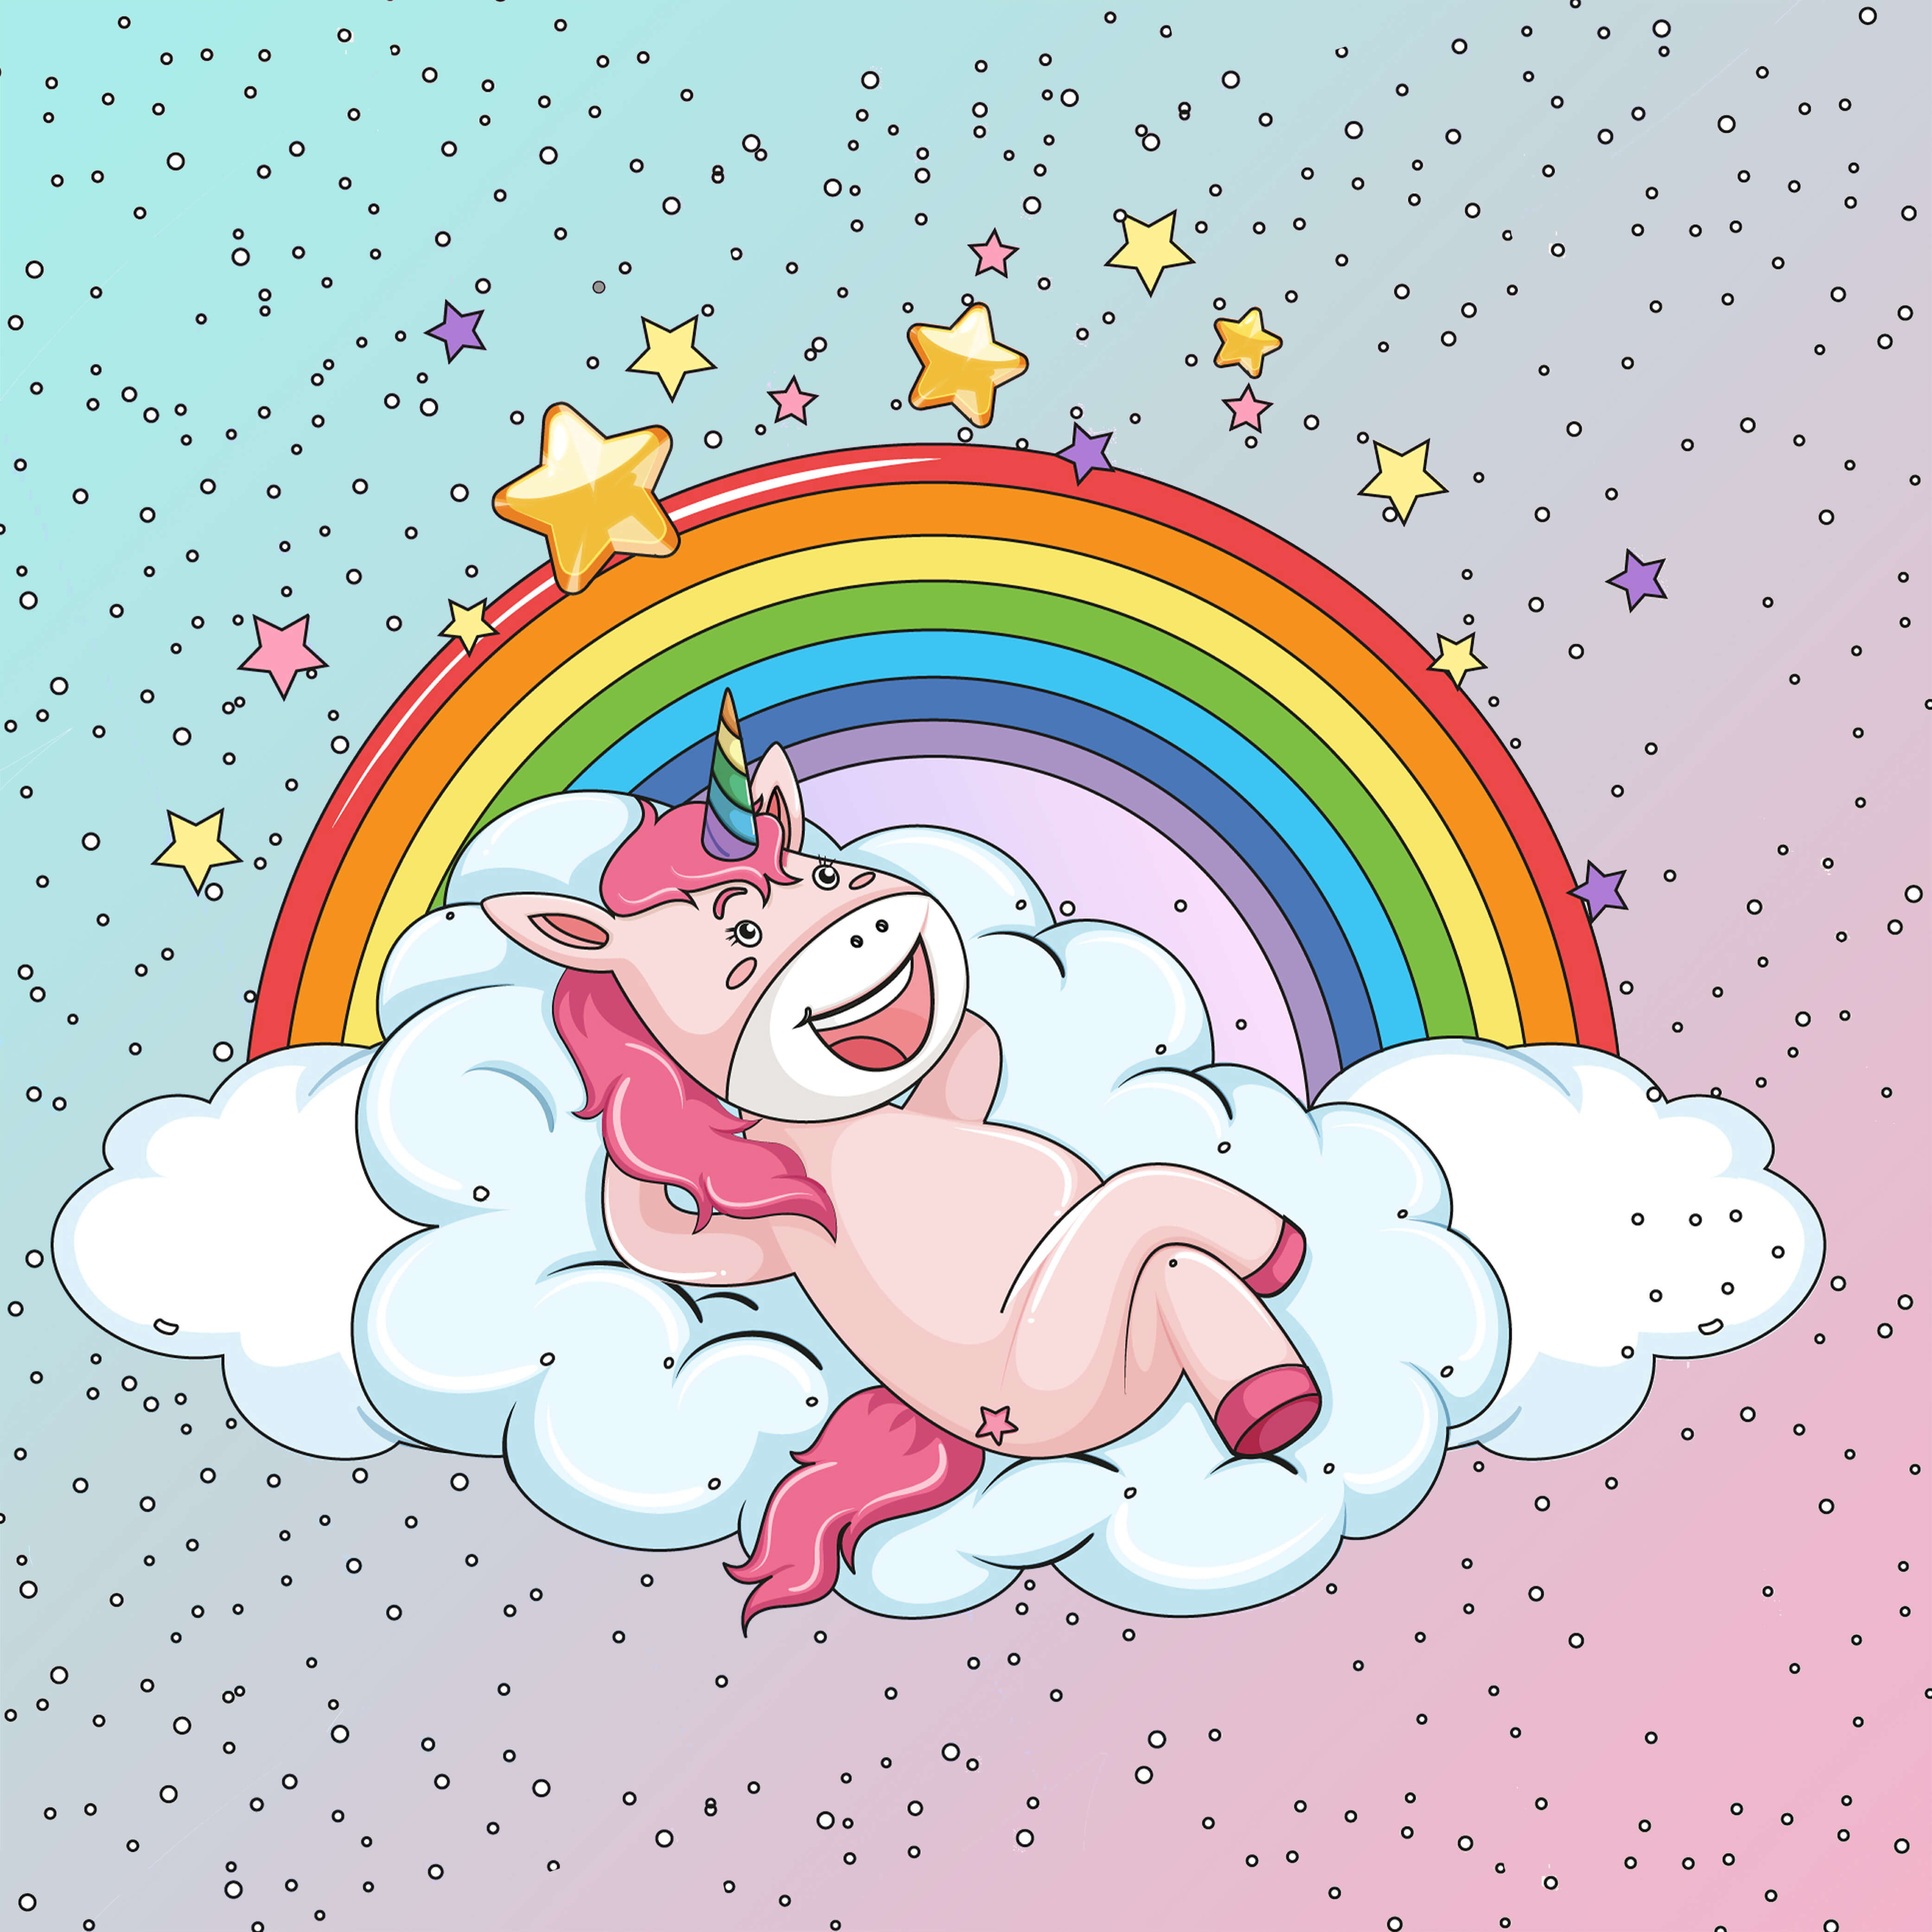 Rainbow Unicorn colored free coloring pages to print for adults